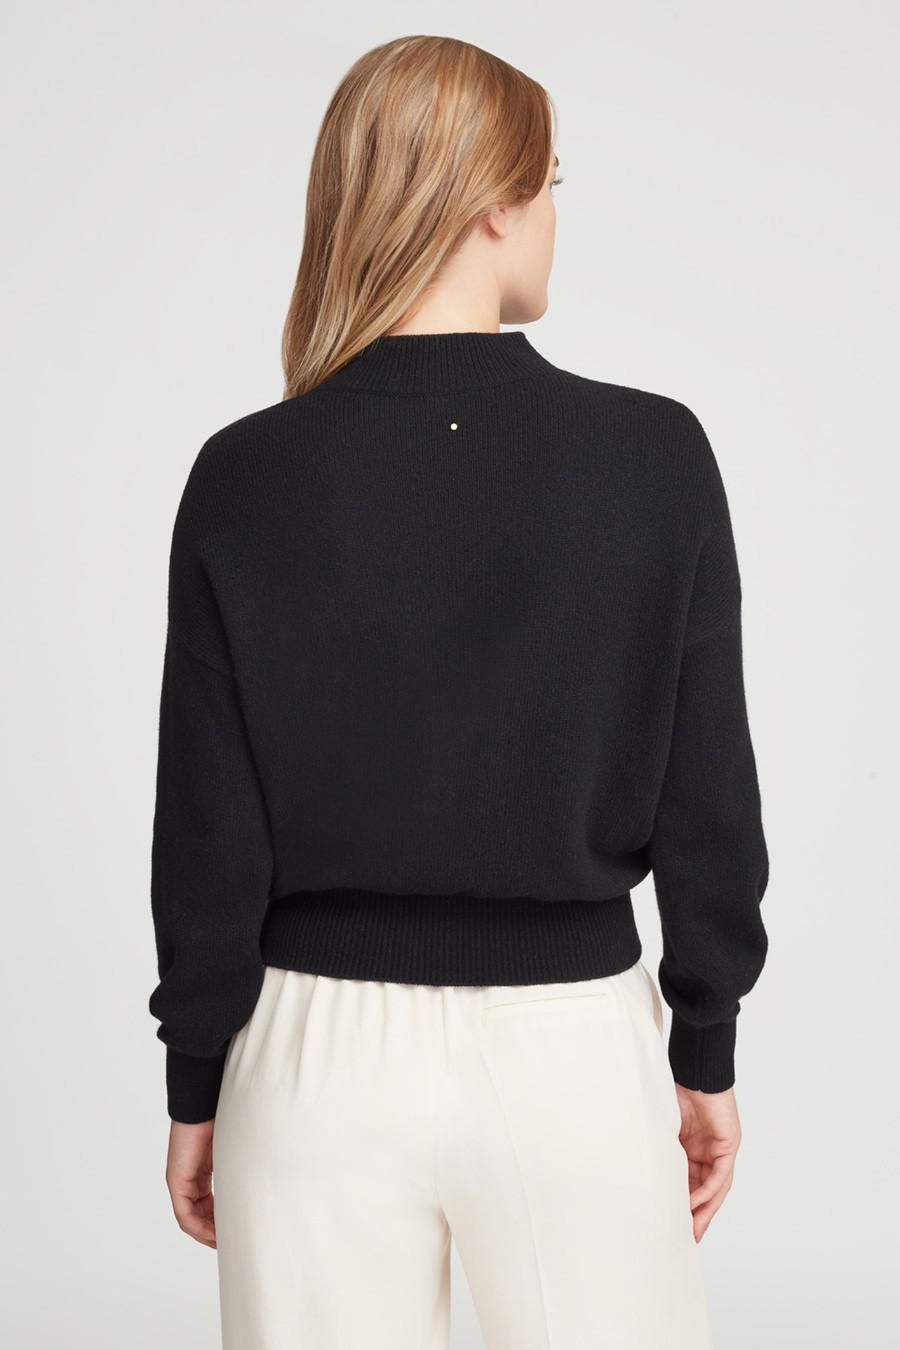 Women's Recycled Mock Neck Sweater in Black | Size: 2